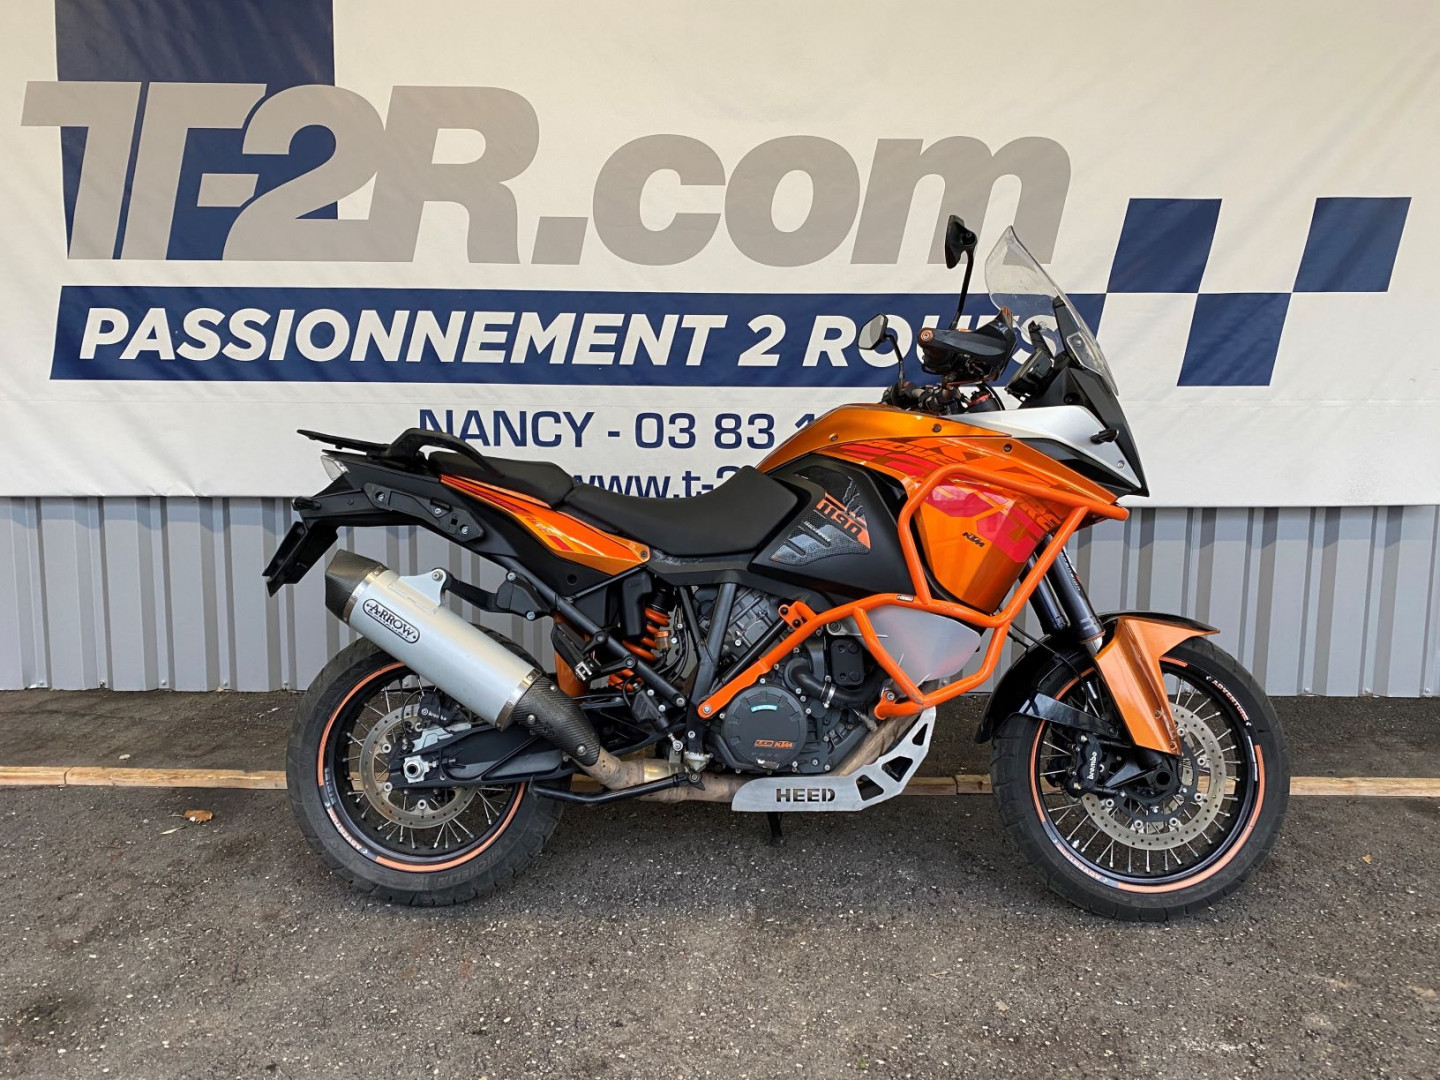 KTM ADVENTURE 1190 - NANCY